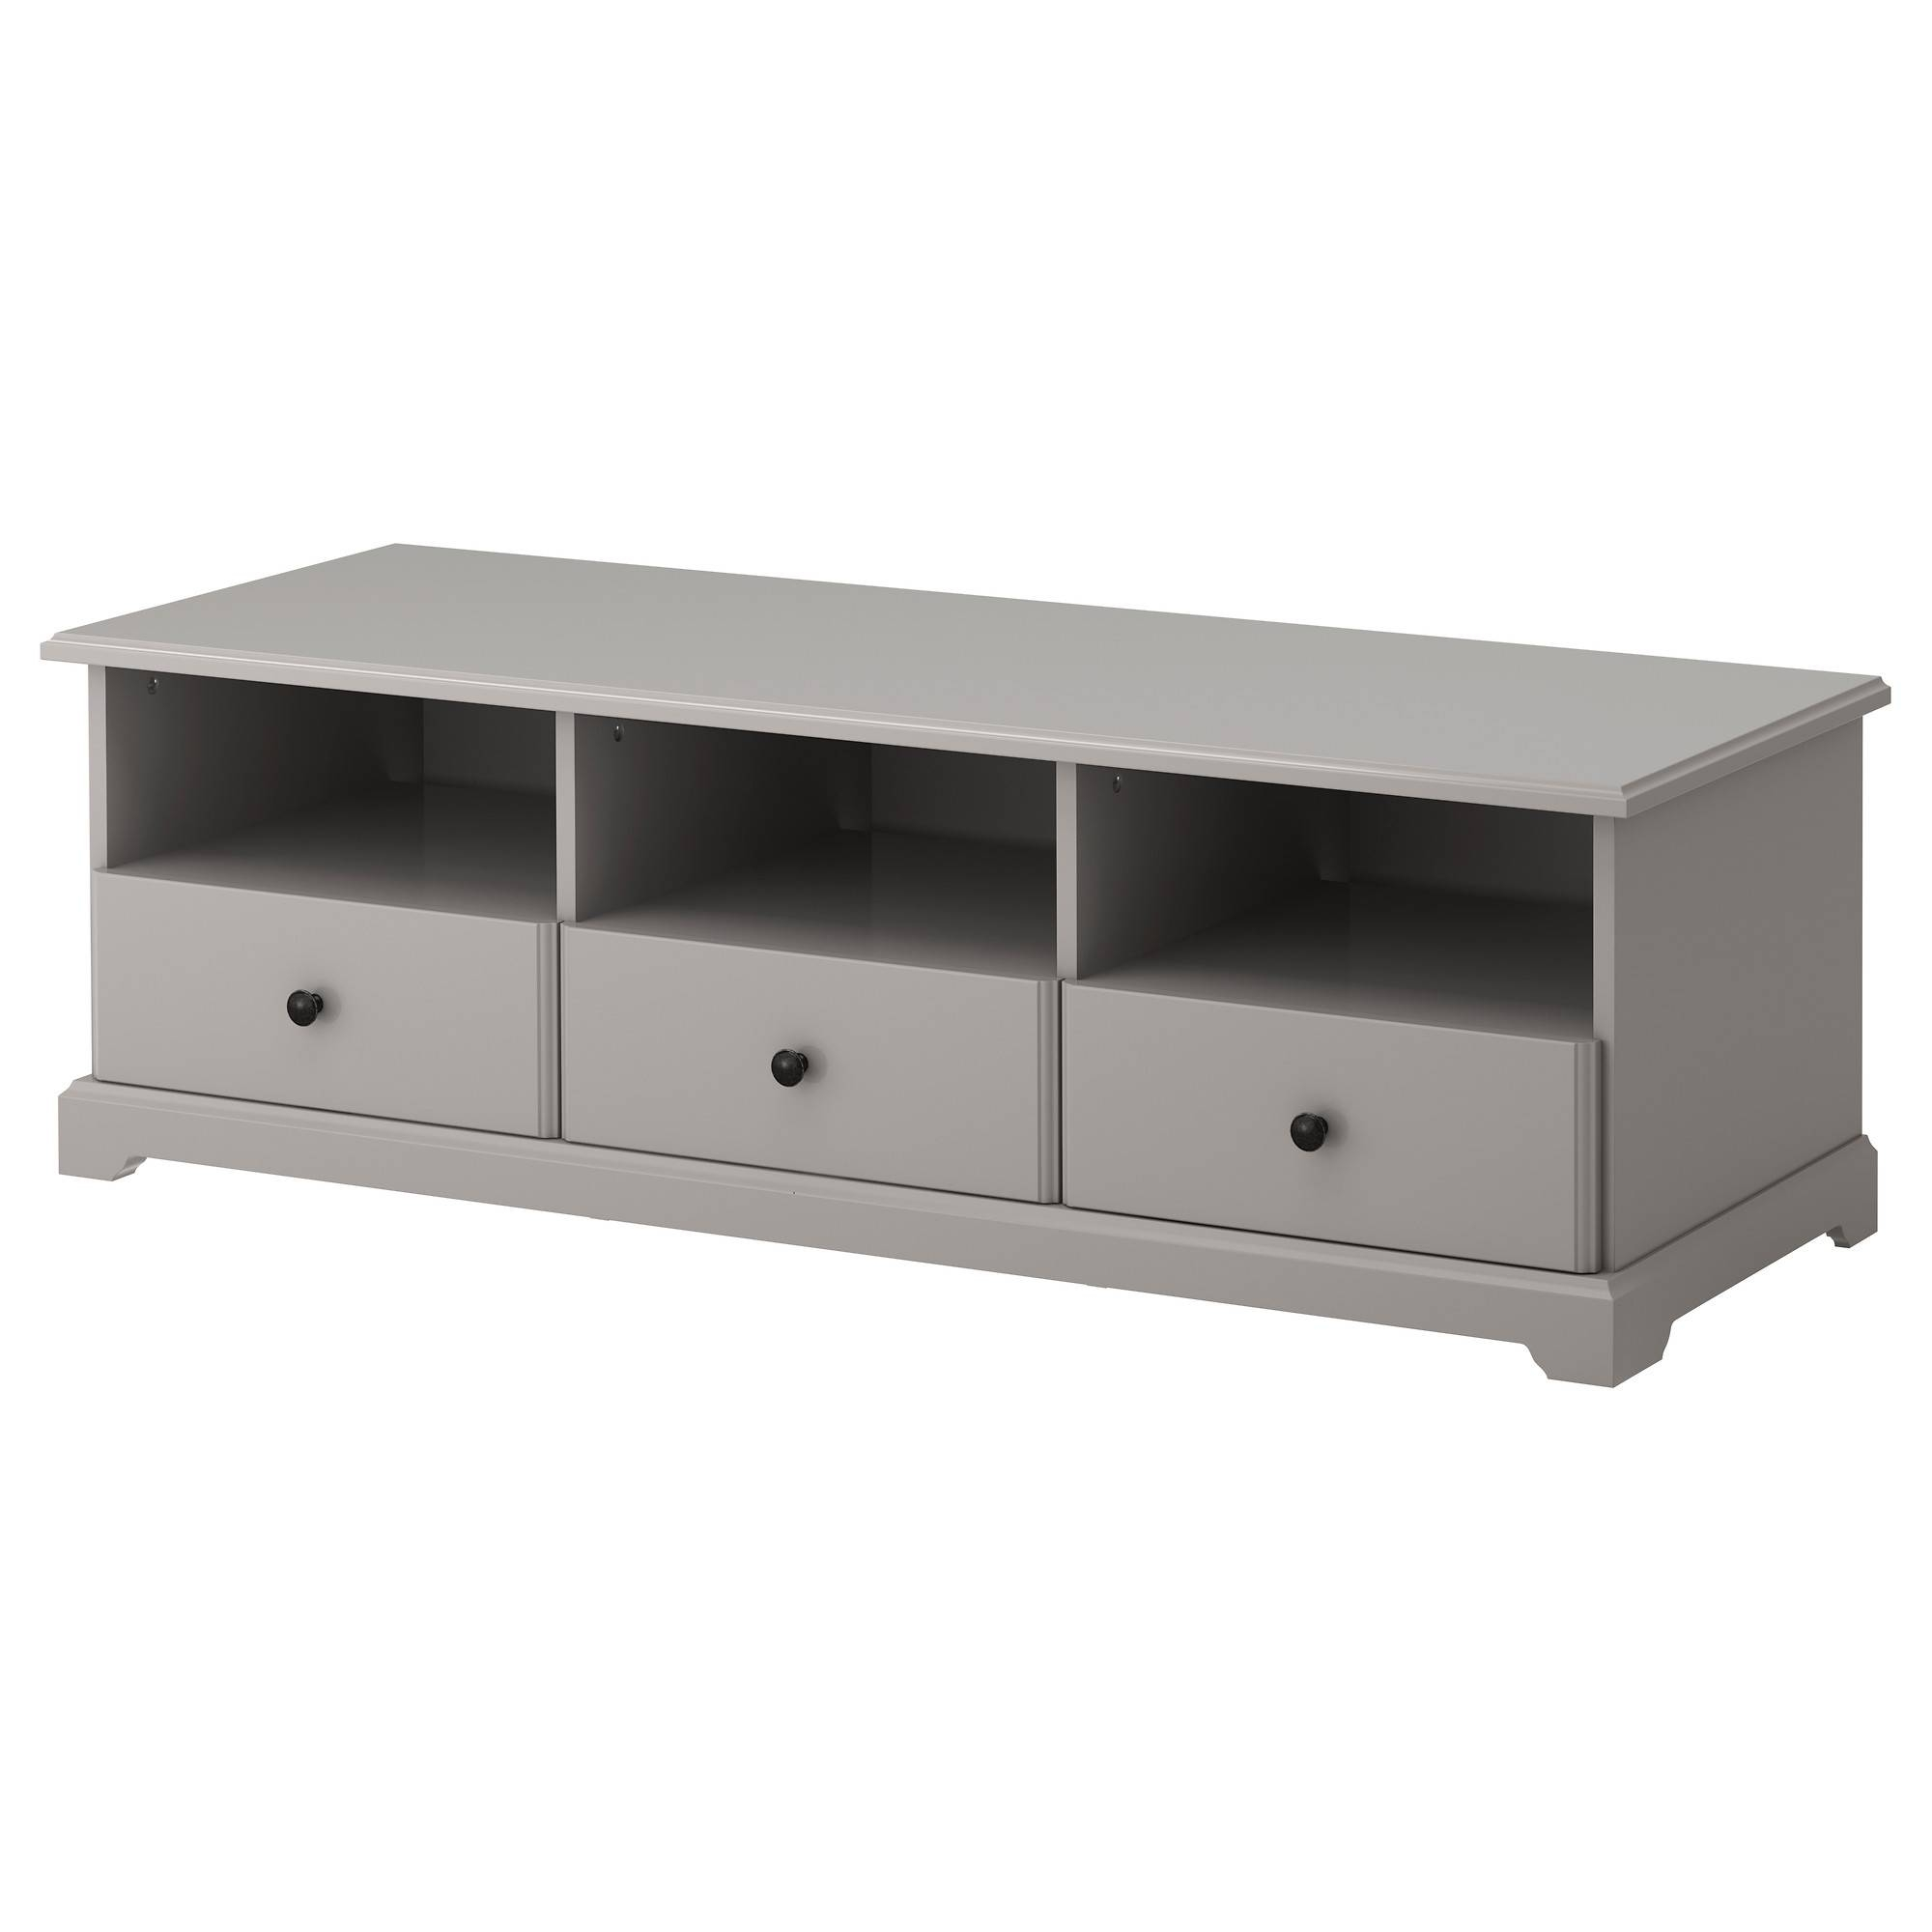 Tv Stands & Tv Units | Ikea Pertaining To Slimline Tv Cabinets (View 11 of 15)